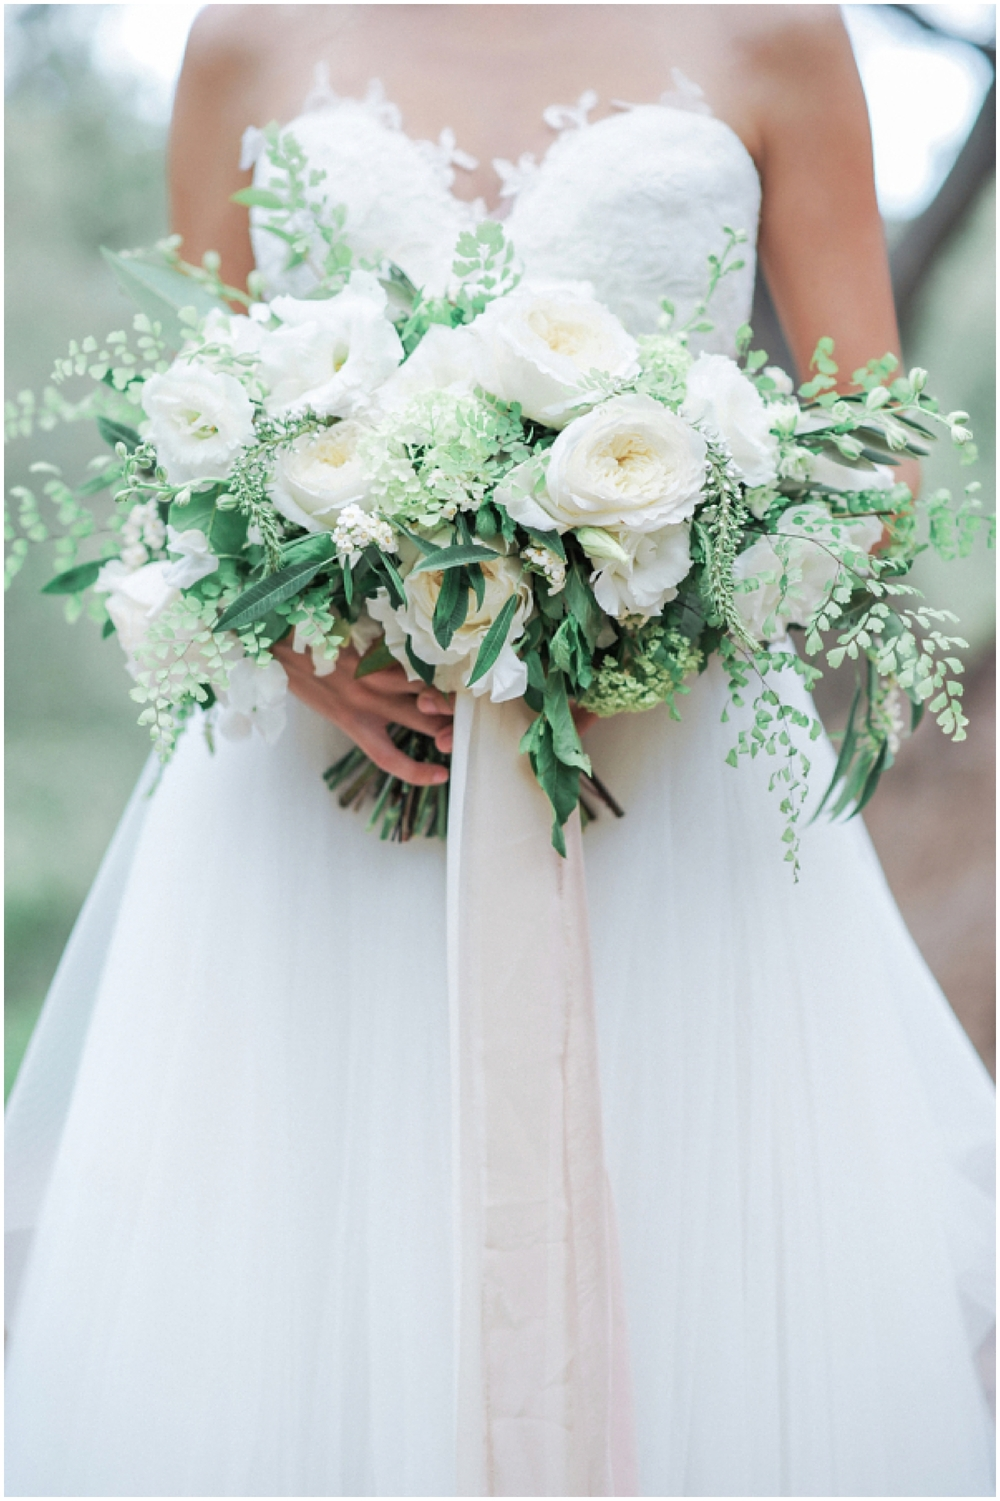 An absolutely stunning all white wedding bouquet as seen on Style Me Pretty | Photo by McCune Photography | Florals by Bloomwell & Co.